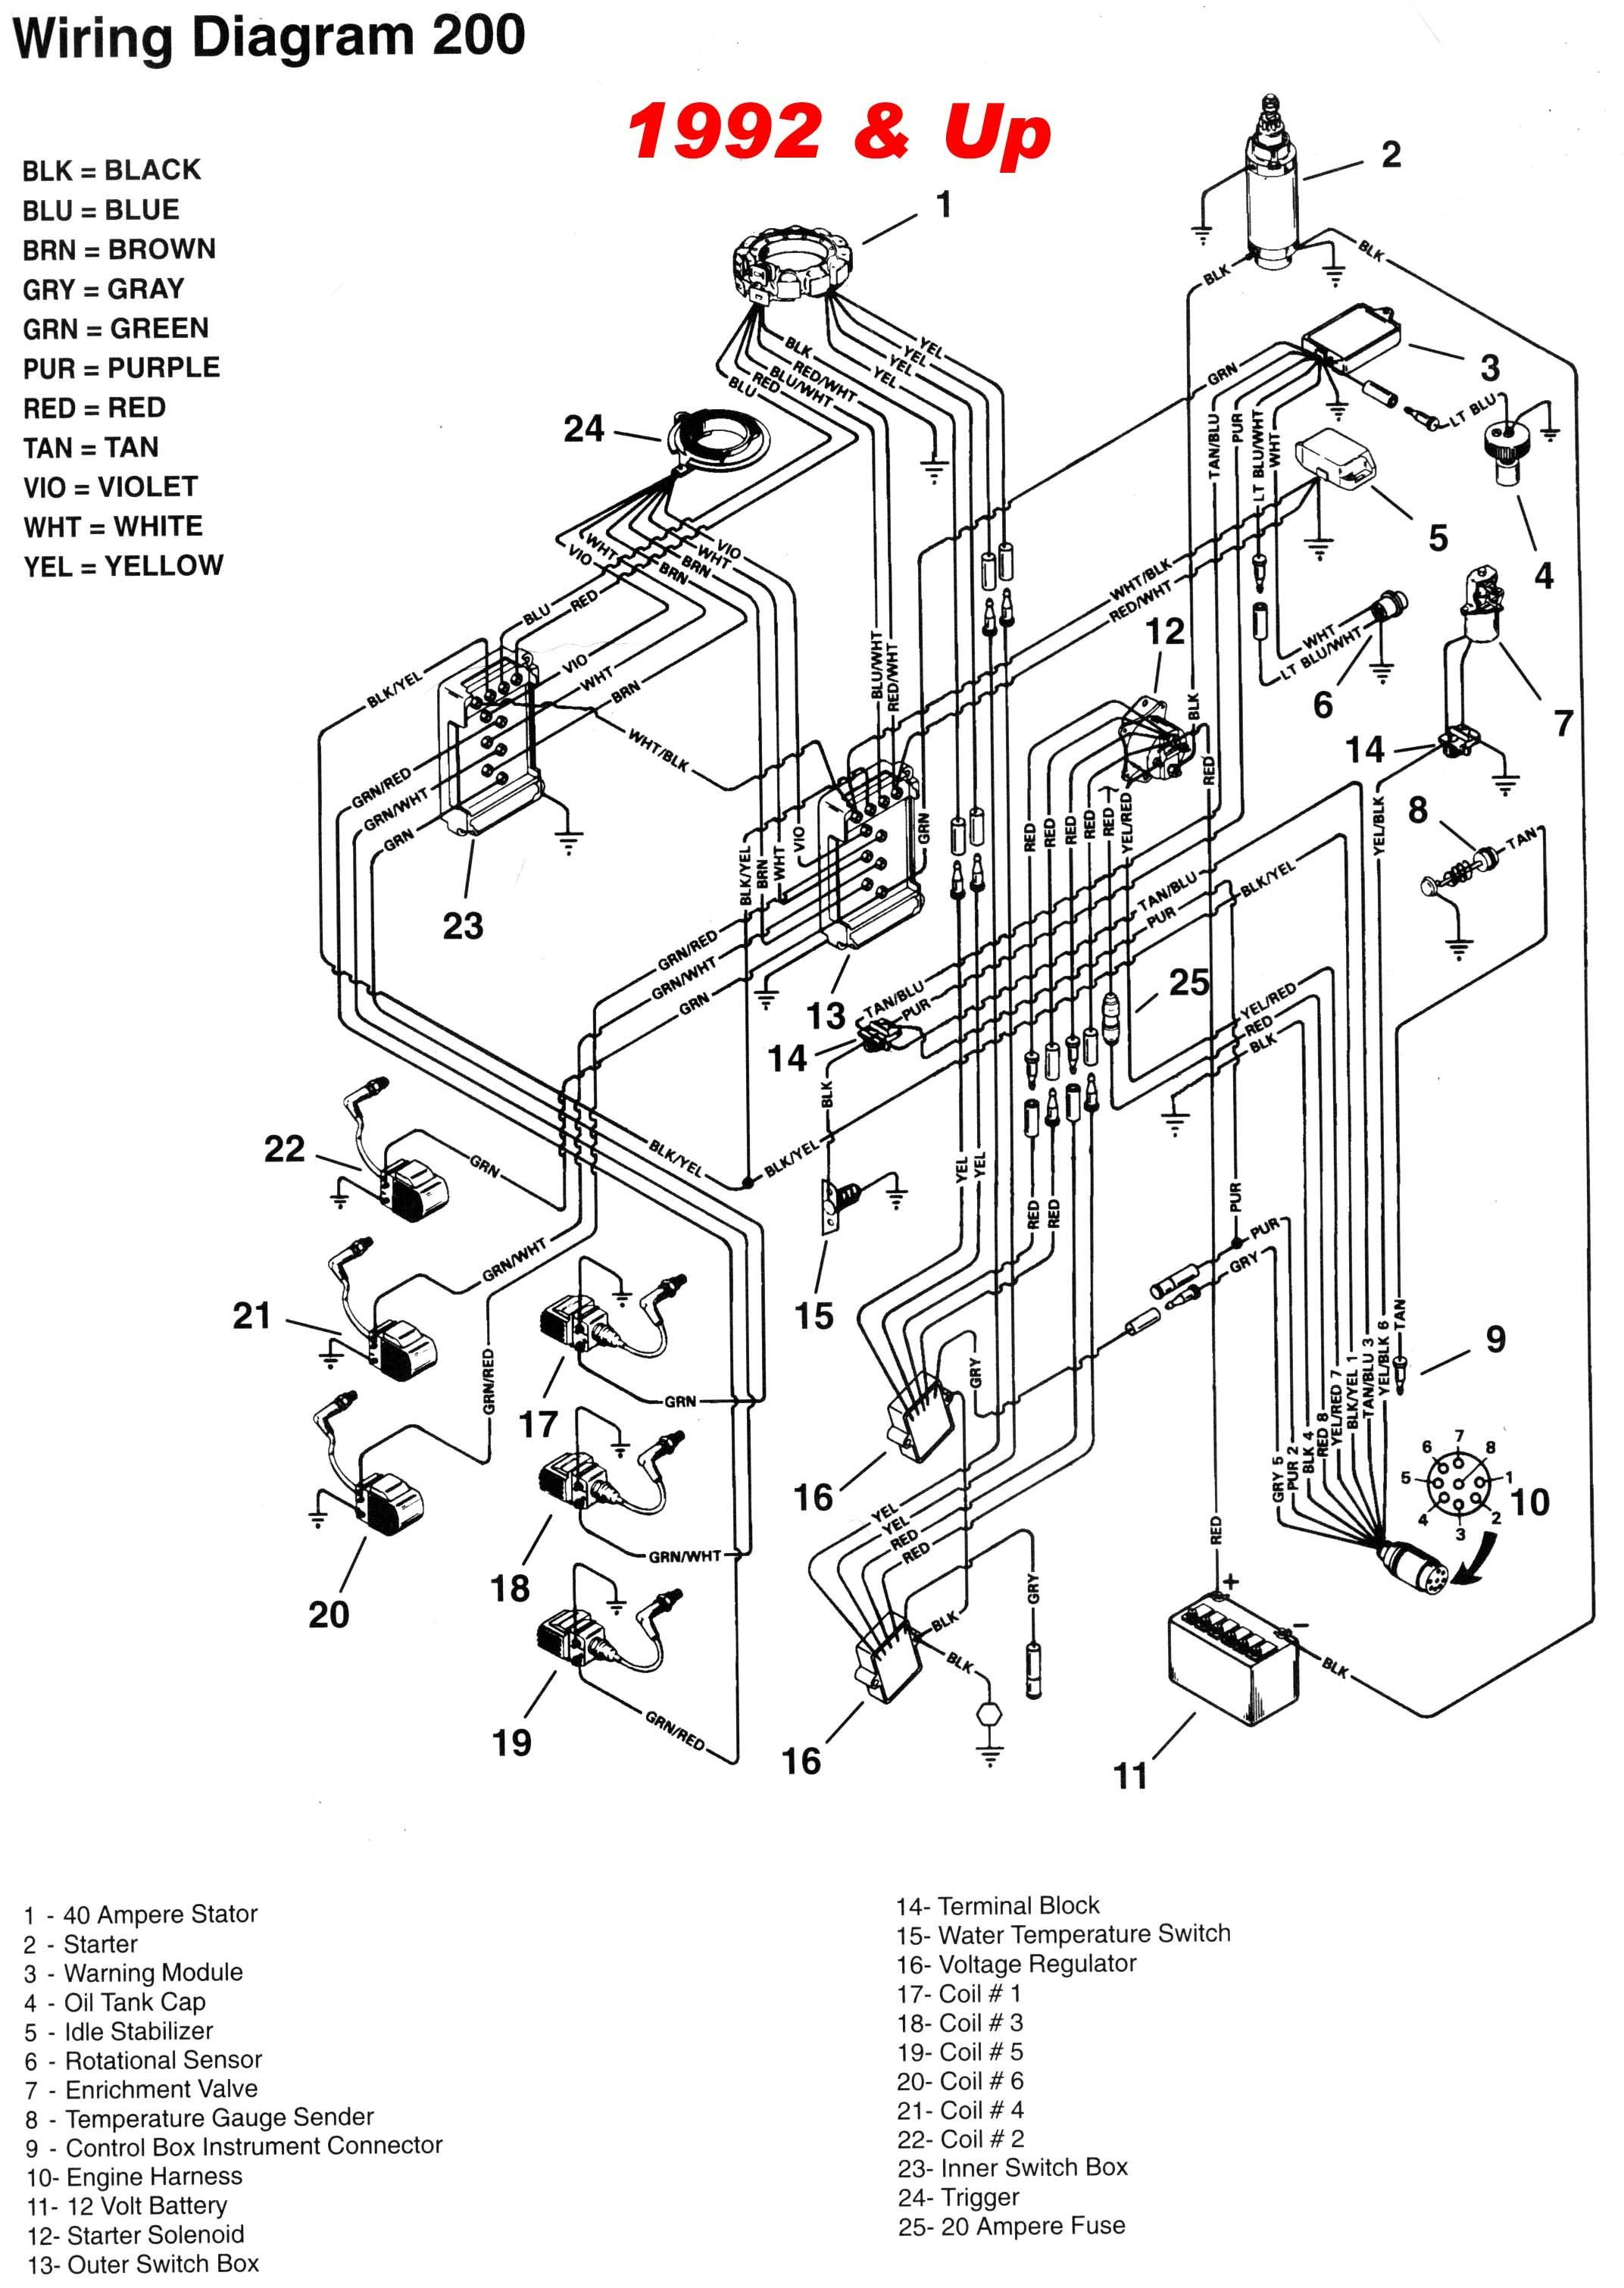 DIAGRAM] 2005 Mercury Mariner Wiring Diagram FULL Version HD Quality Wiring  Diagram - RITUALDIAGRAMS.HOTELABBAZIATRIESTE.IT | 1998 40 Hp Mercury Wiring Diagram |  | Diagram Database - hotelabbaziatrieste.it